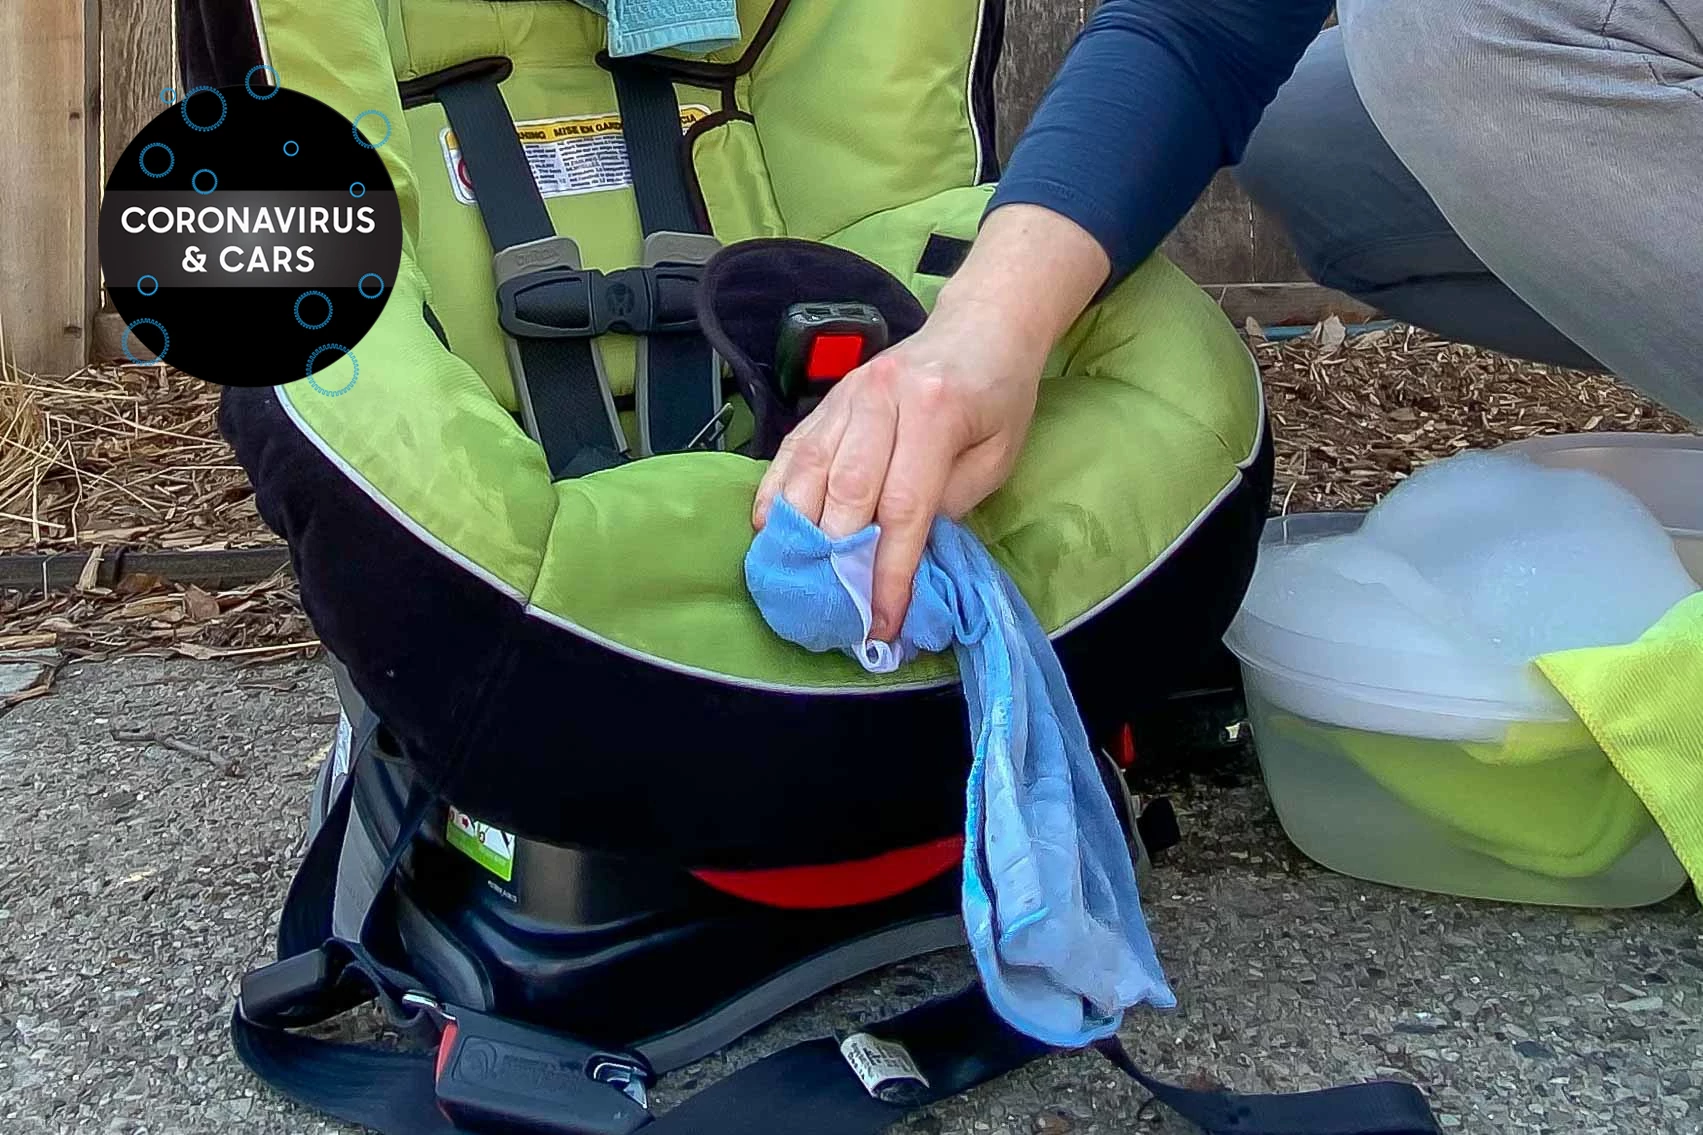 Coronavirus and Cleaning Your Child's Car Seat: What Parents Need to Know